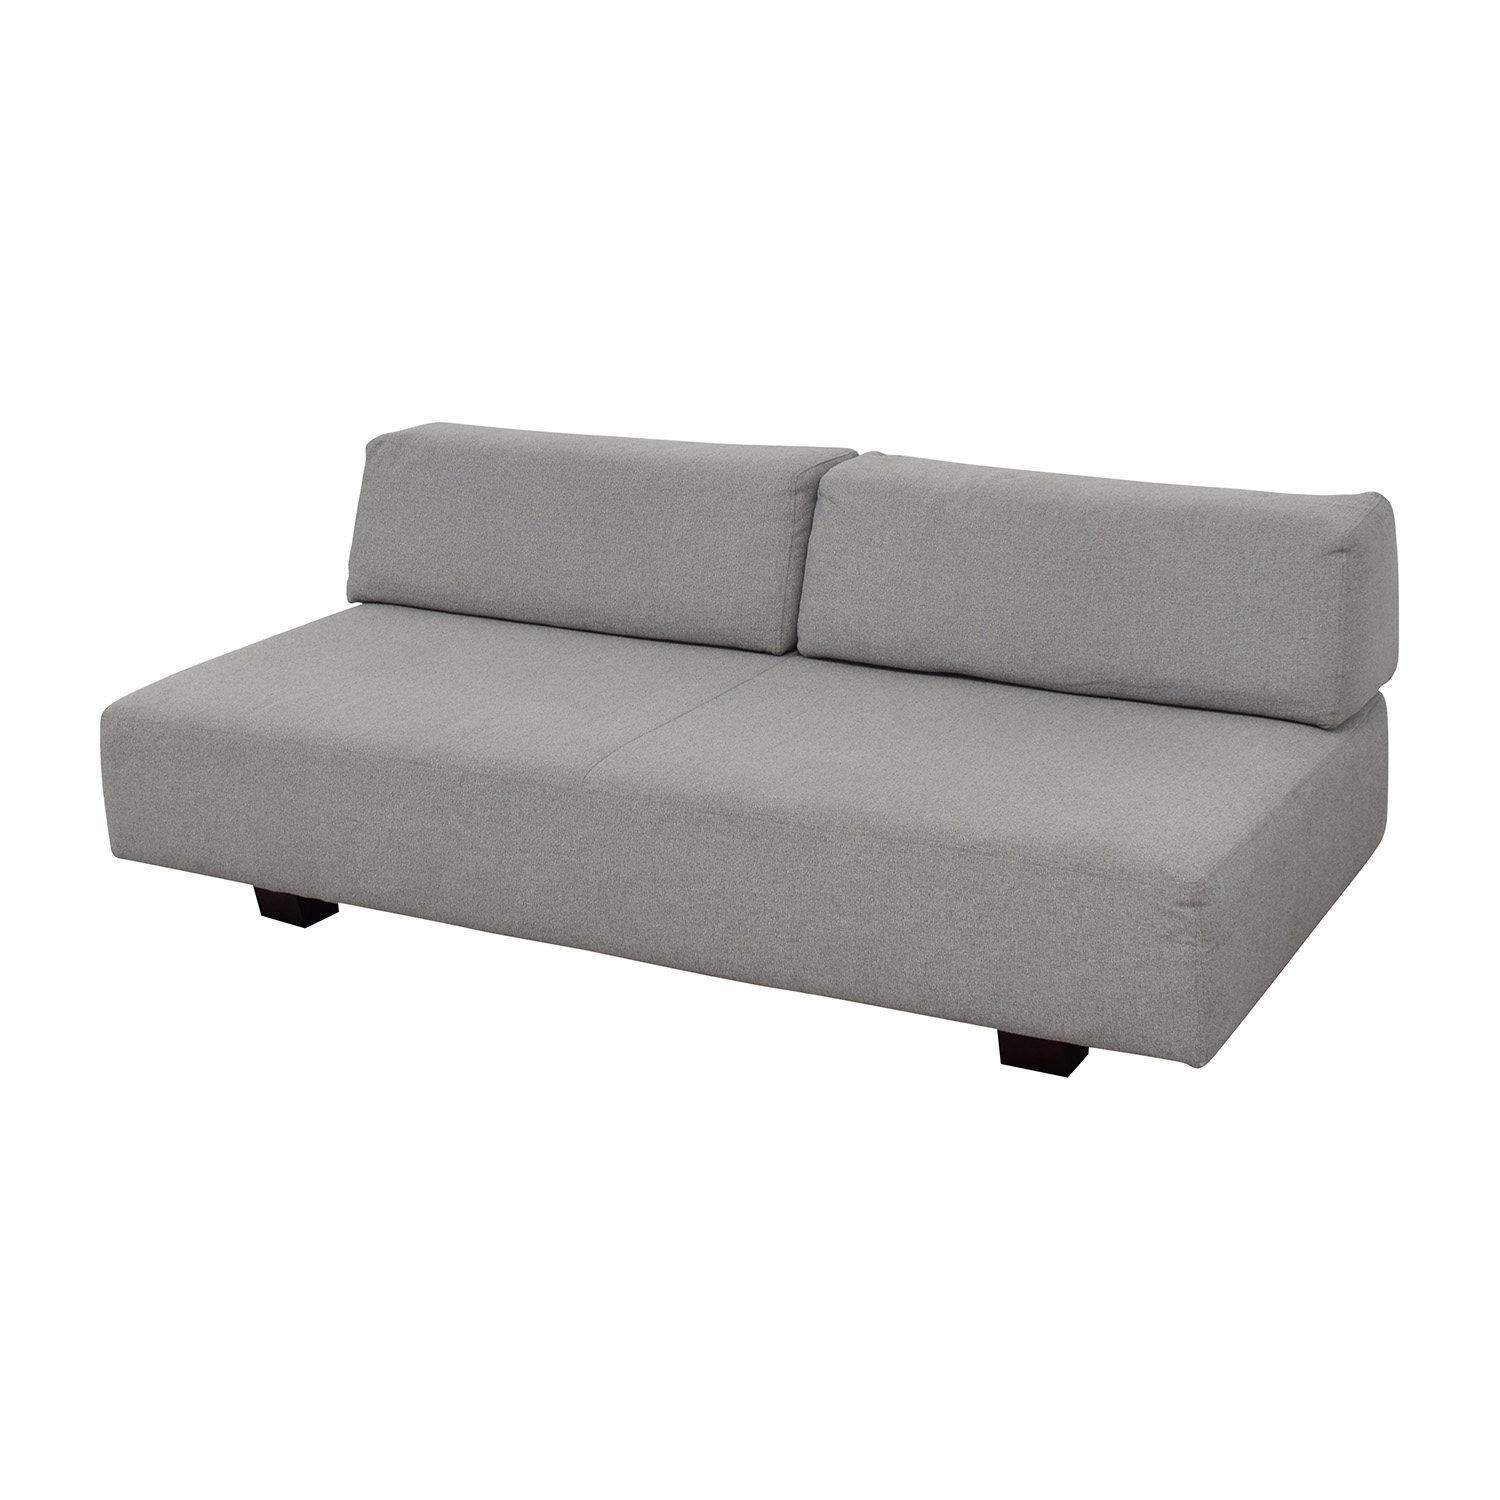 Great ... Shop West Elm West Elm Tillary Modular Seating Online ...